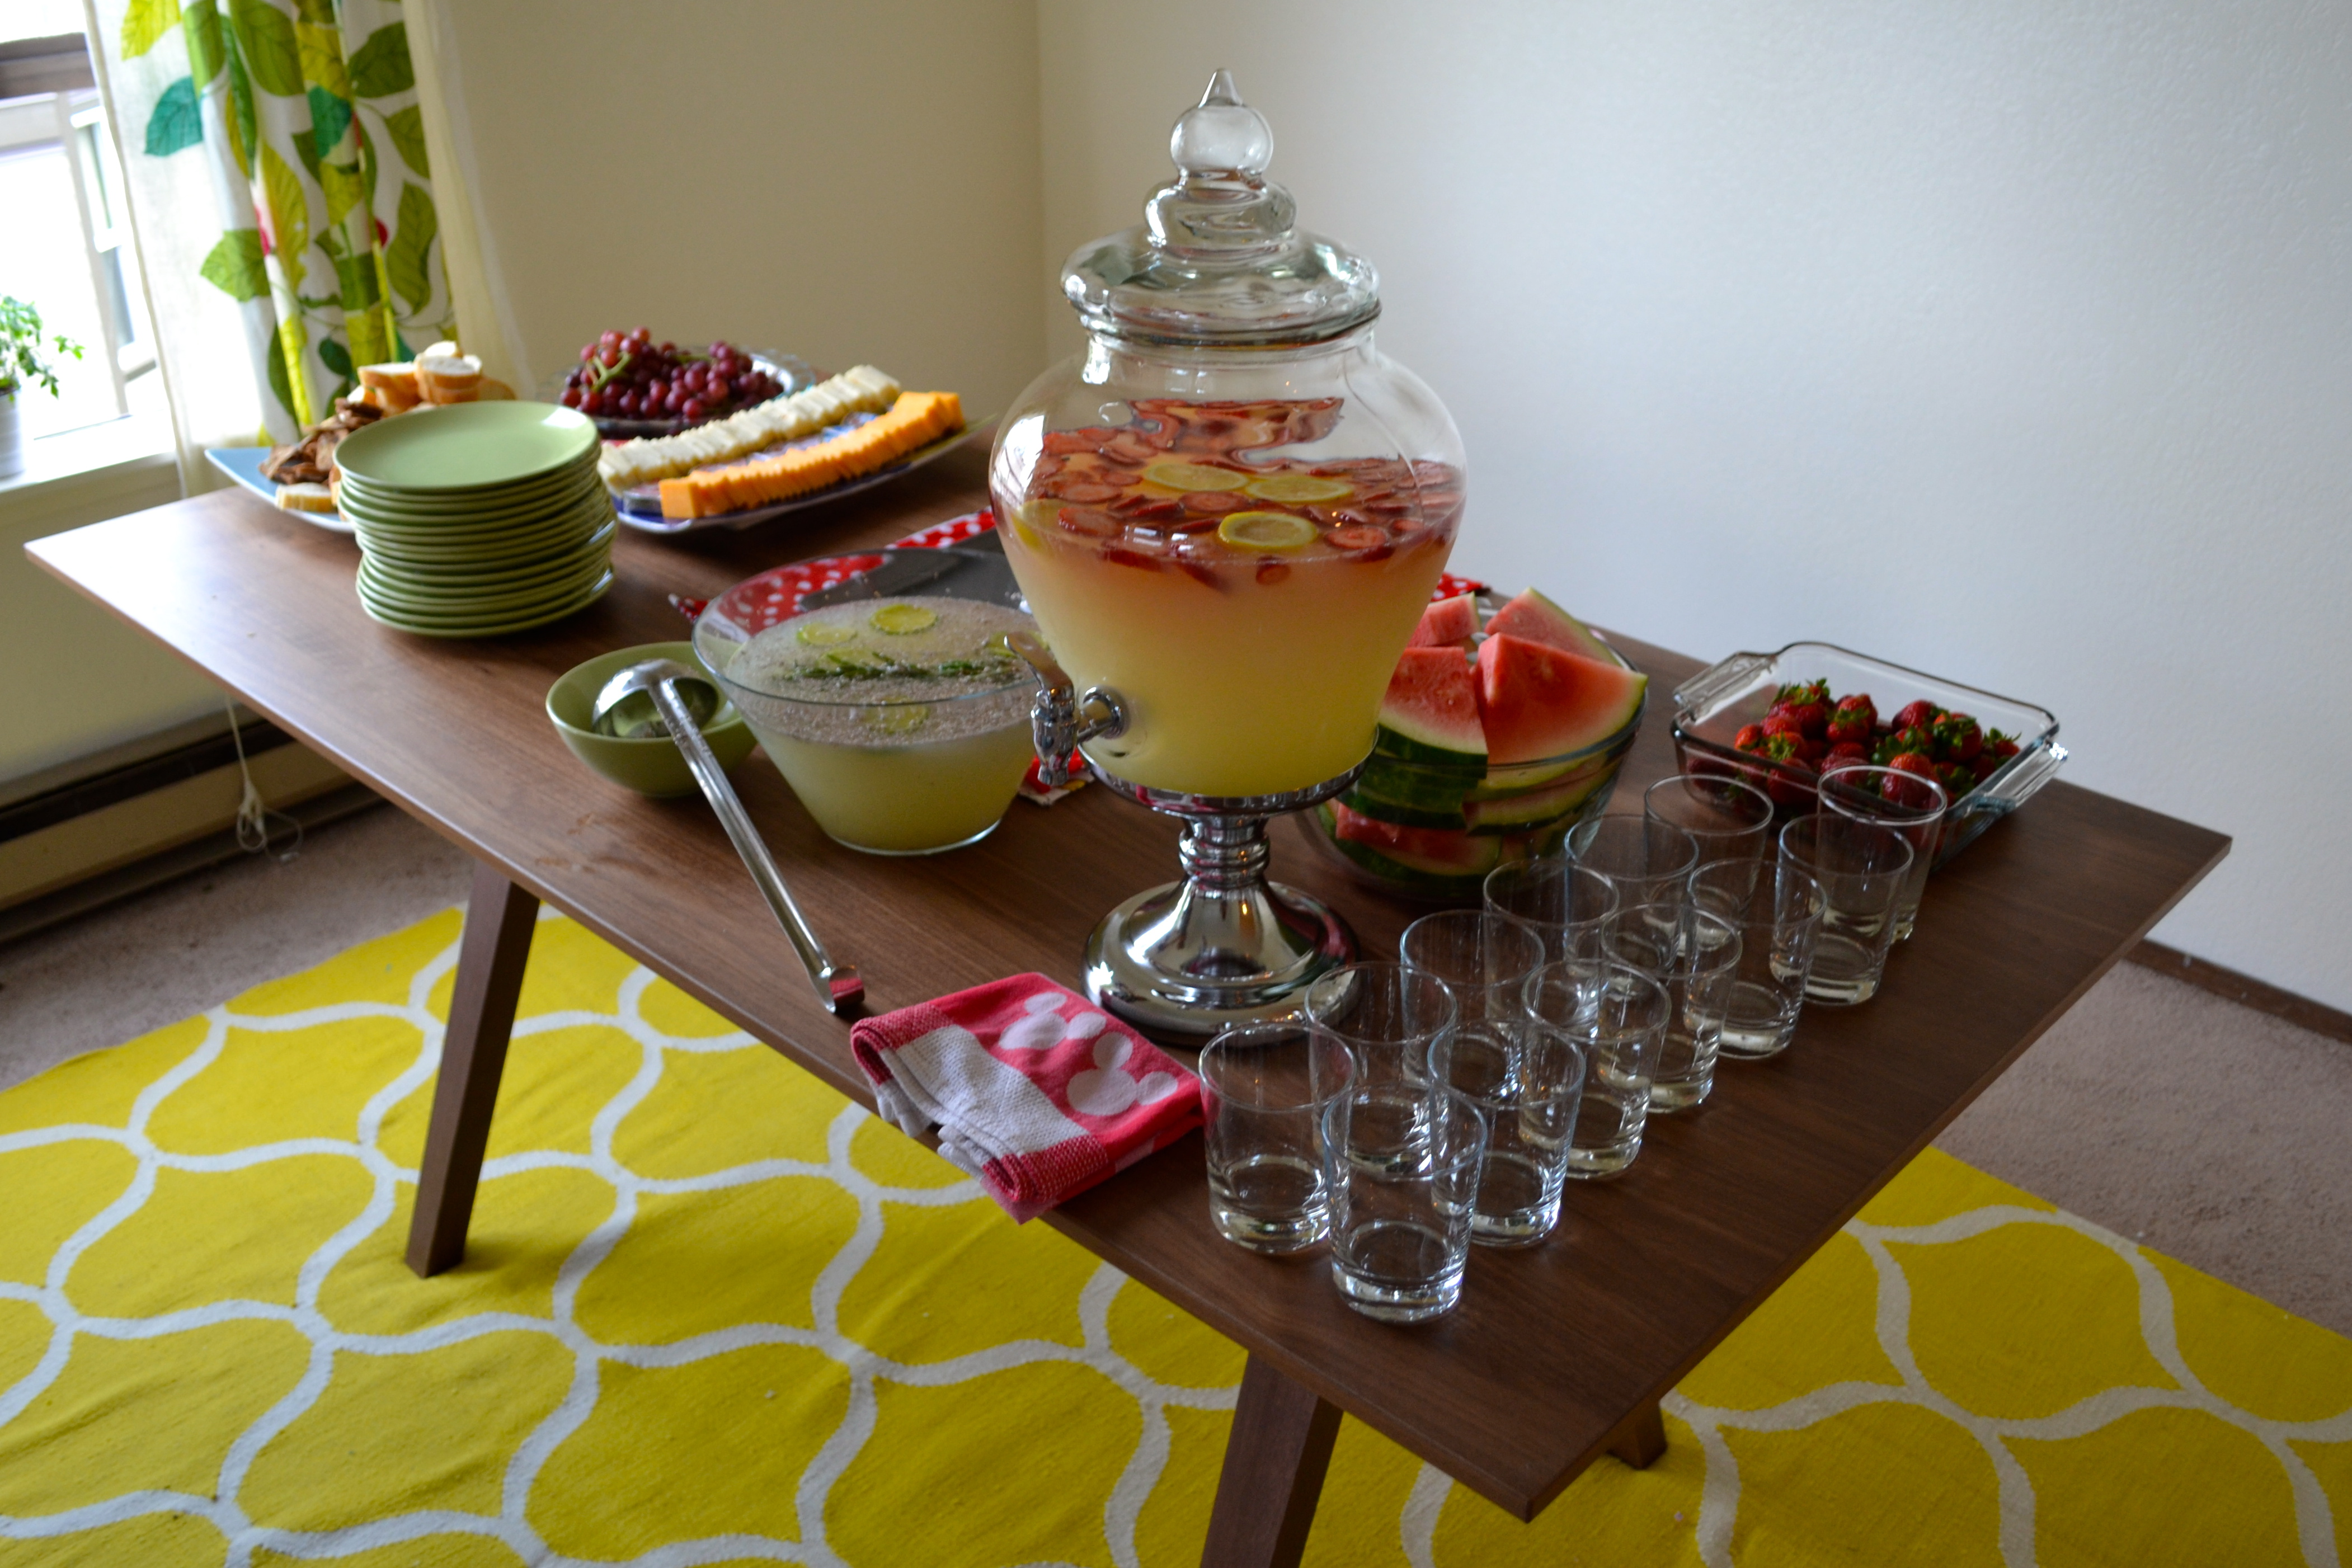 housewarming party food drinks table strawberry lemonade mostly enjoyed charge coming dsc